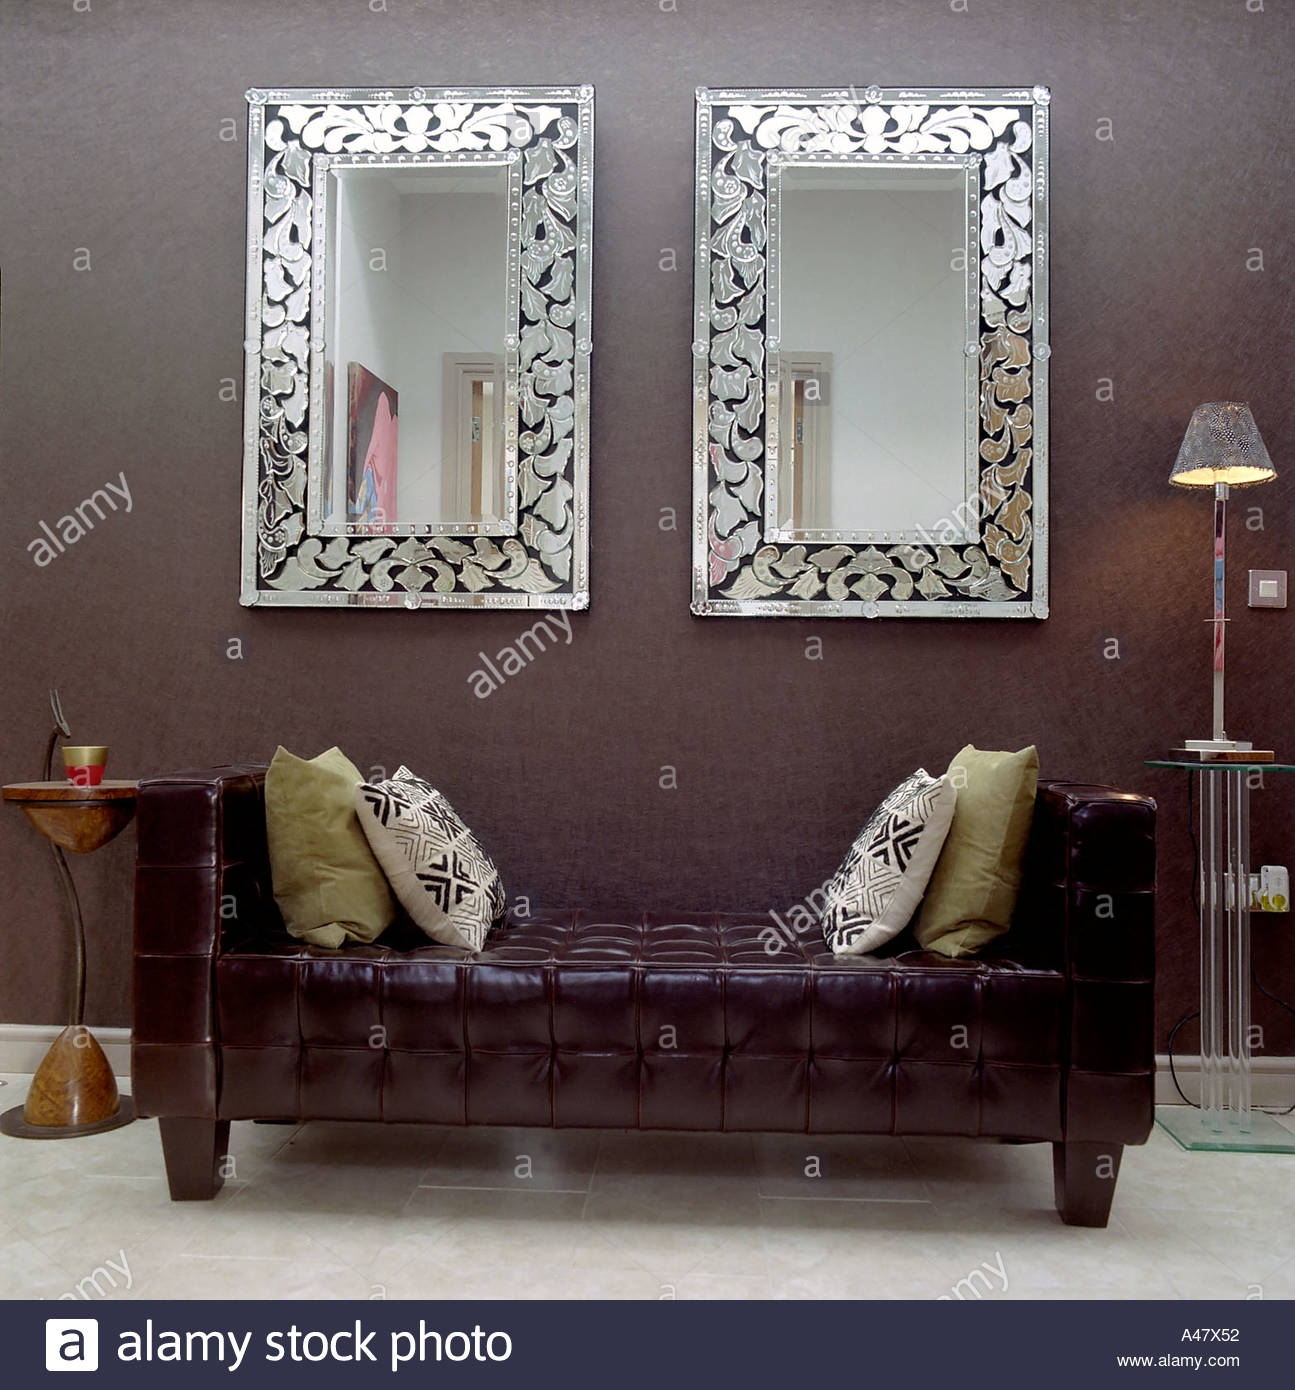 Featured Image of Mirrors In Birmingham